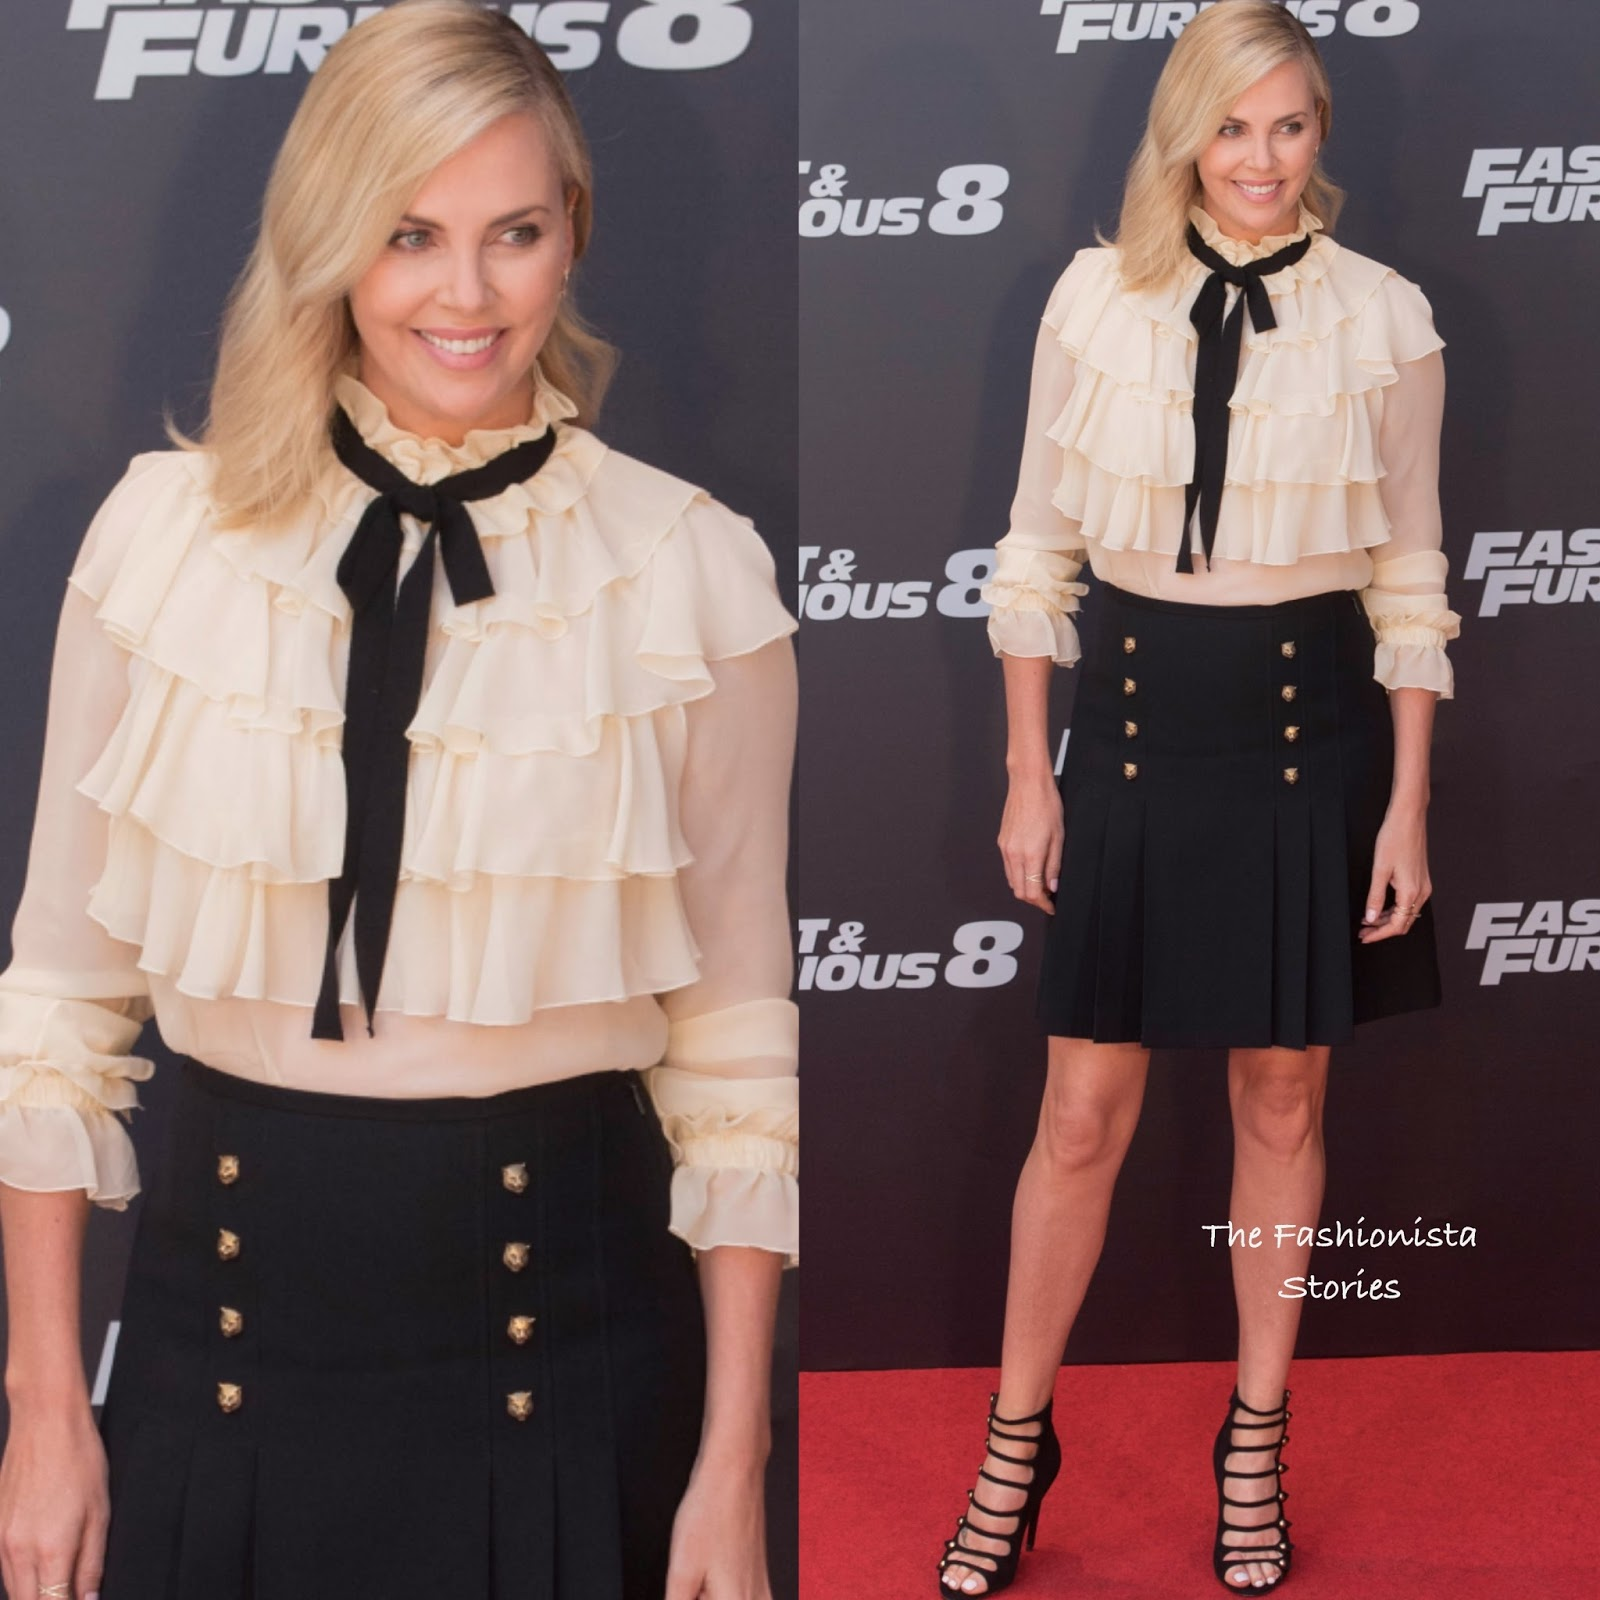 ce9b44c21 Charlize Theron in Gucci at 'The Fate of the Furious' Madrid Photocall